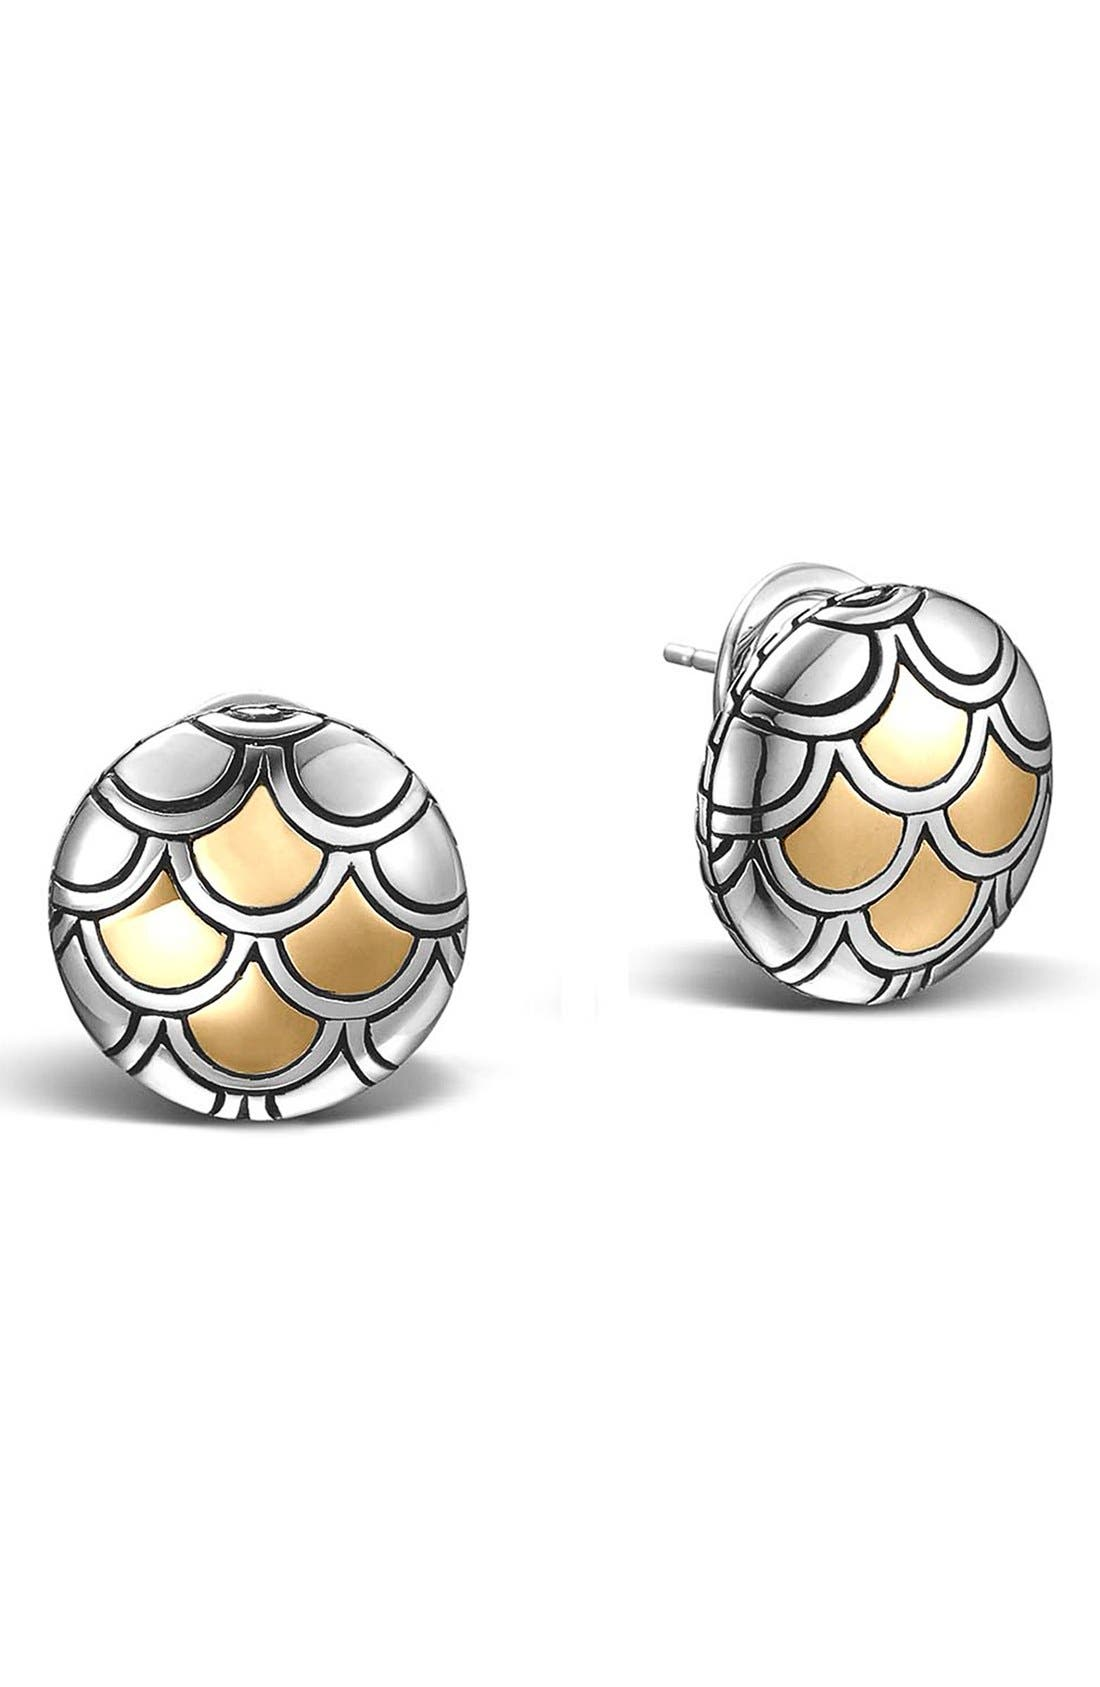 'Legends' Scale Stud Earrings,                             Main thumbnail 1, color,                             Silver/ Gold